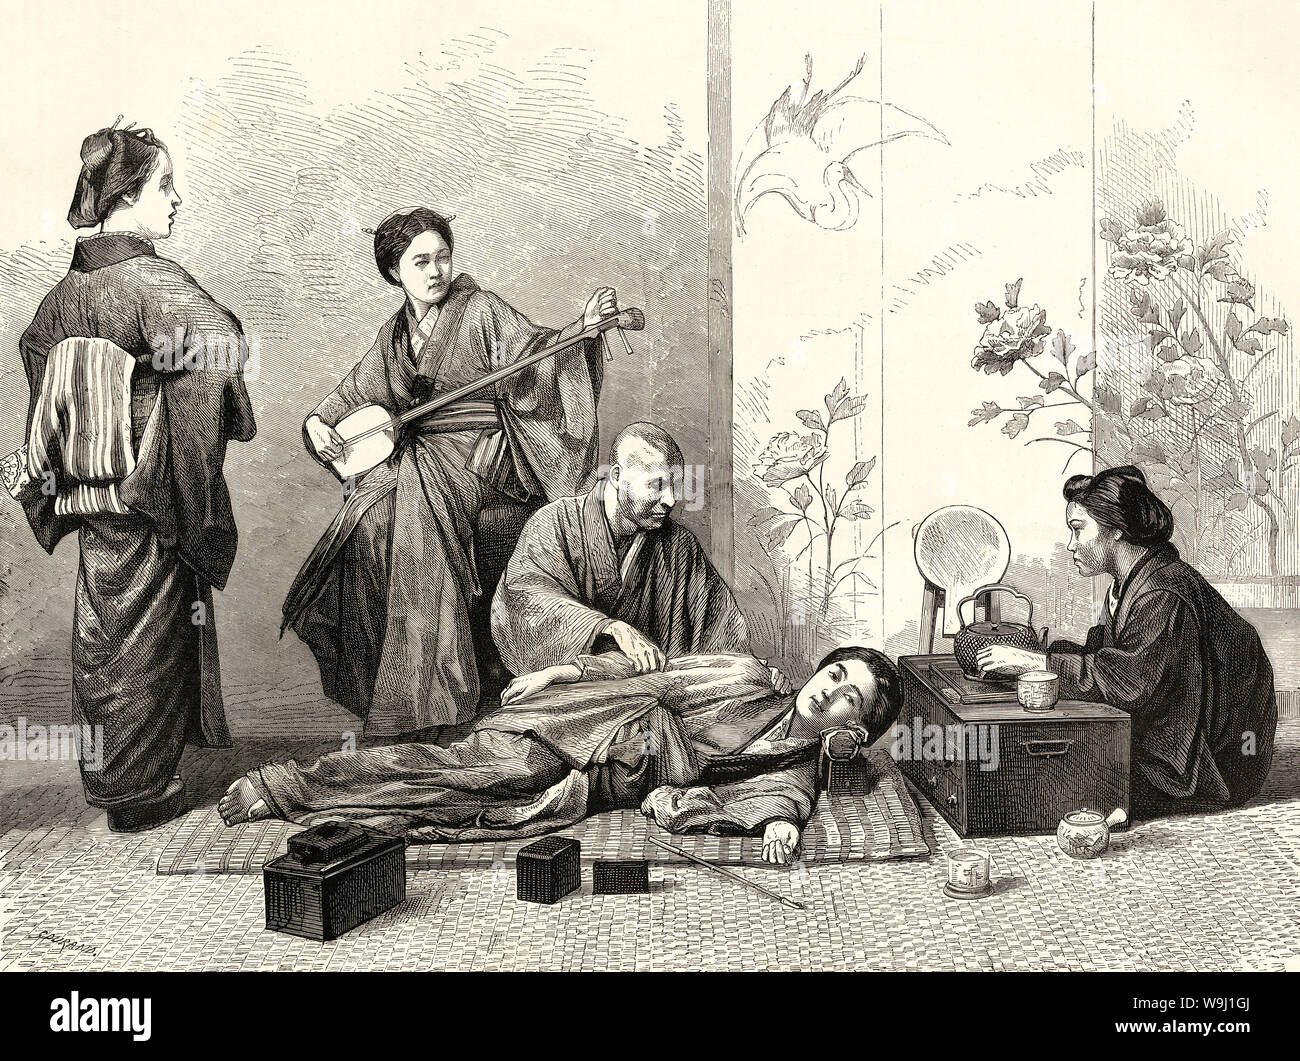 [ 1870s Japan - Japanese Blind Masseur at Work ] —   A blind masseur (あんま) giving a massage to a woman lying on the floor. Massage was a common occupation for the visually impaired. In the back a woman is playing the shamisen. A kiseru pipe is laying on the floor.  Published in the British weekly illustrated newspaper The Graphic on April 30, 1870 (Meiji 3).  19th century vintage newspaper illustration. Stock Photo